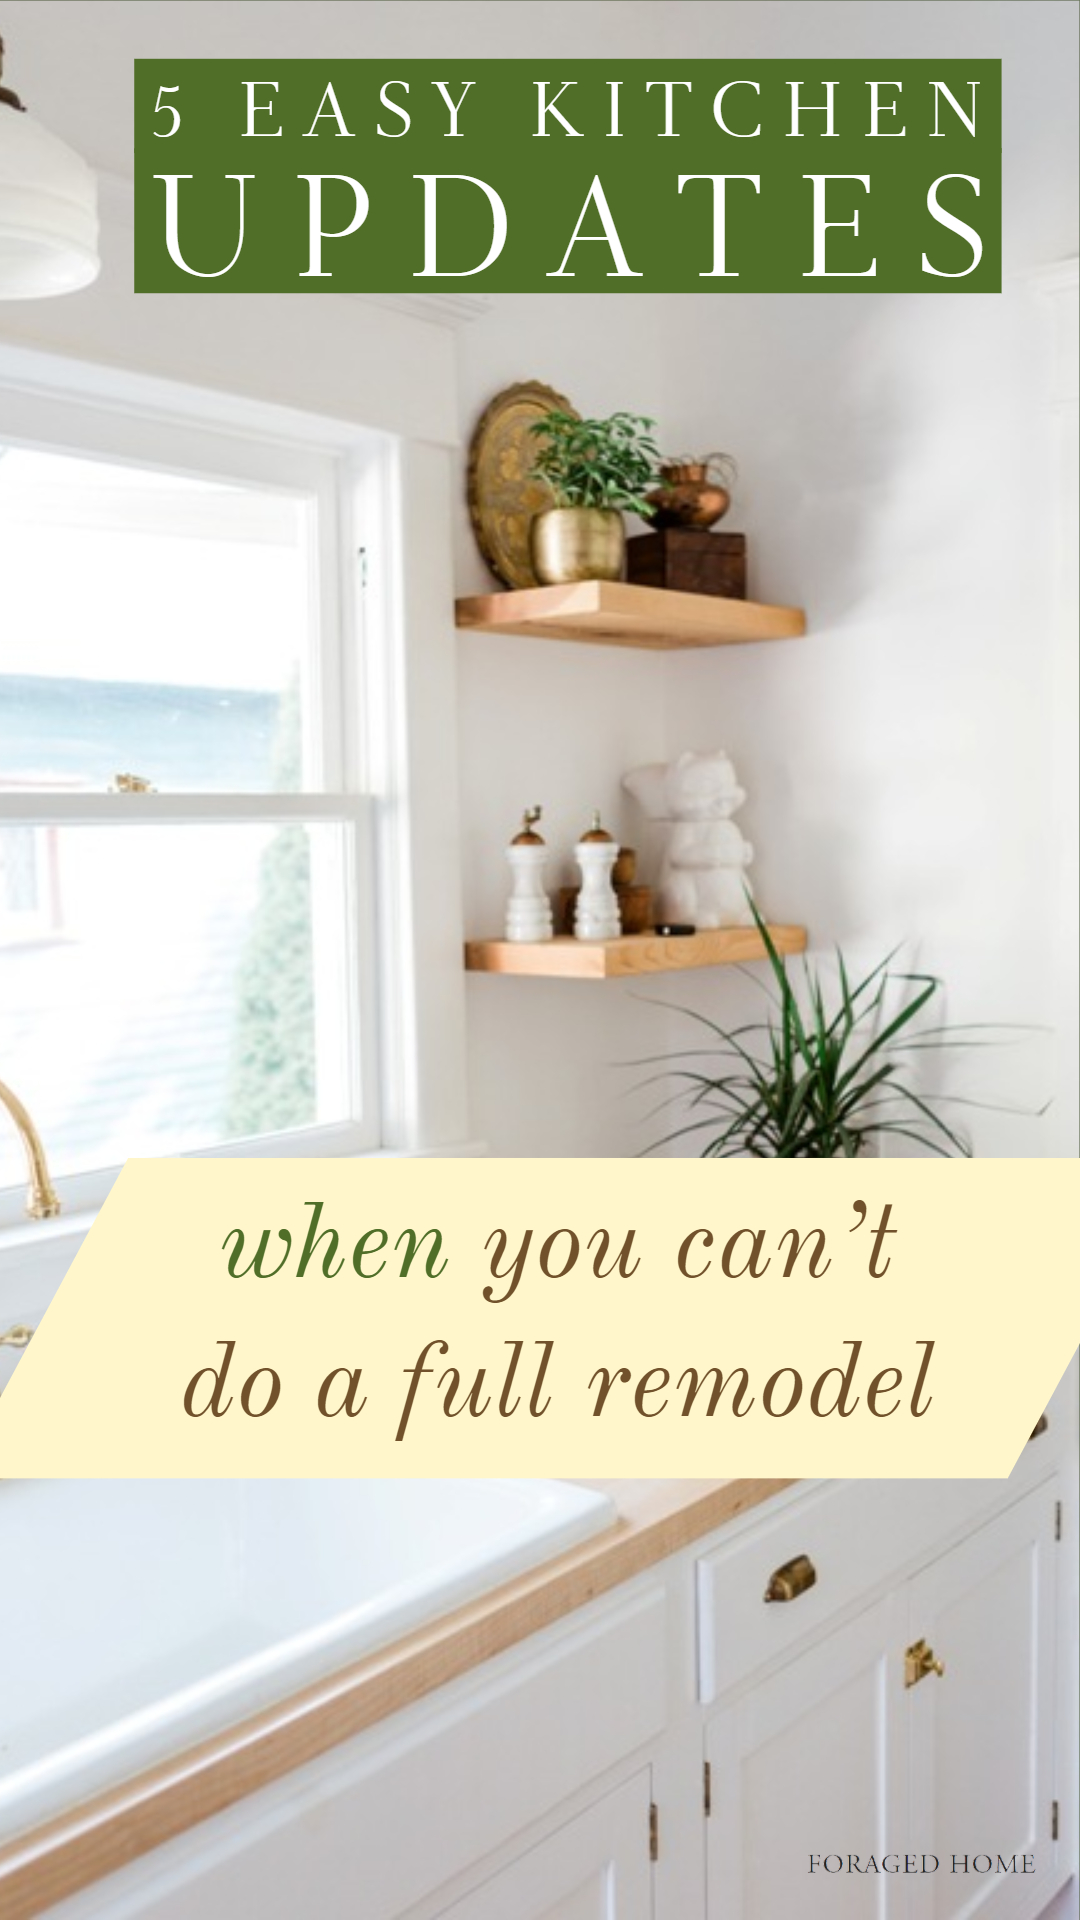 5 Inexpensive and Easy Kitchen updates when you can't do a full remodel from Foragedhome.com #kitchenreno #kitchendecor #kitchenrenovation